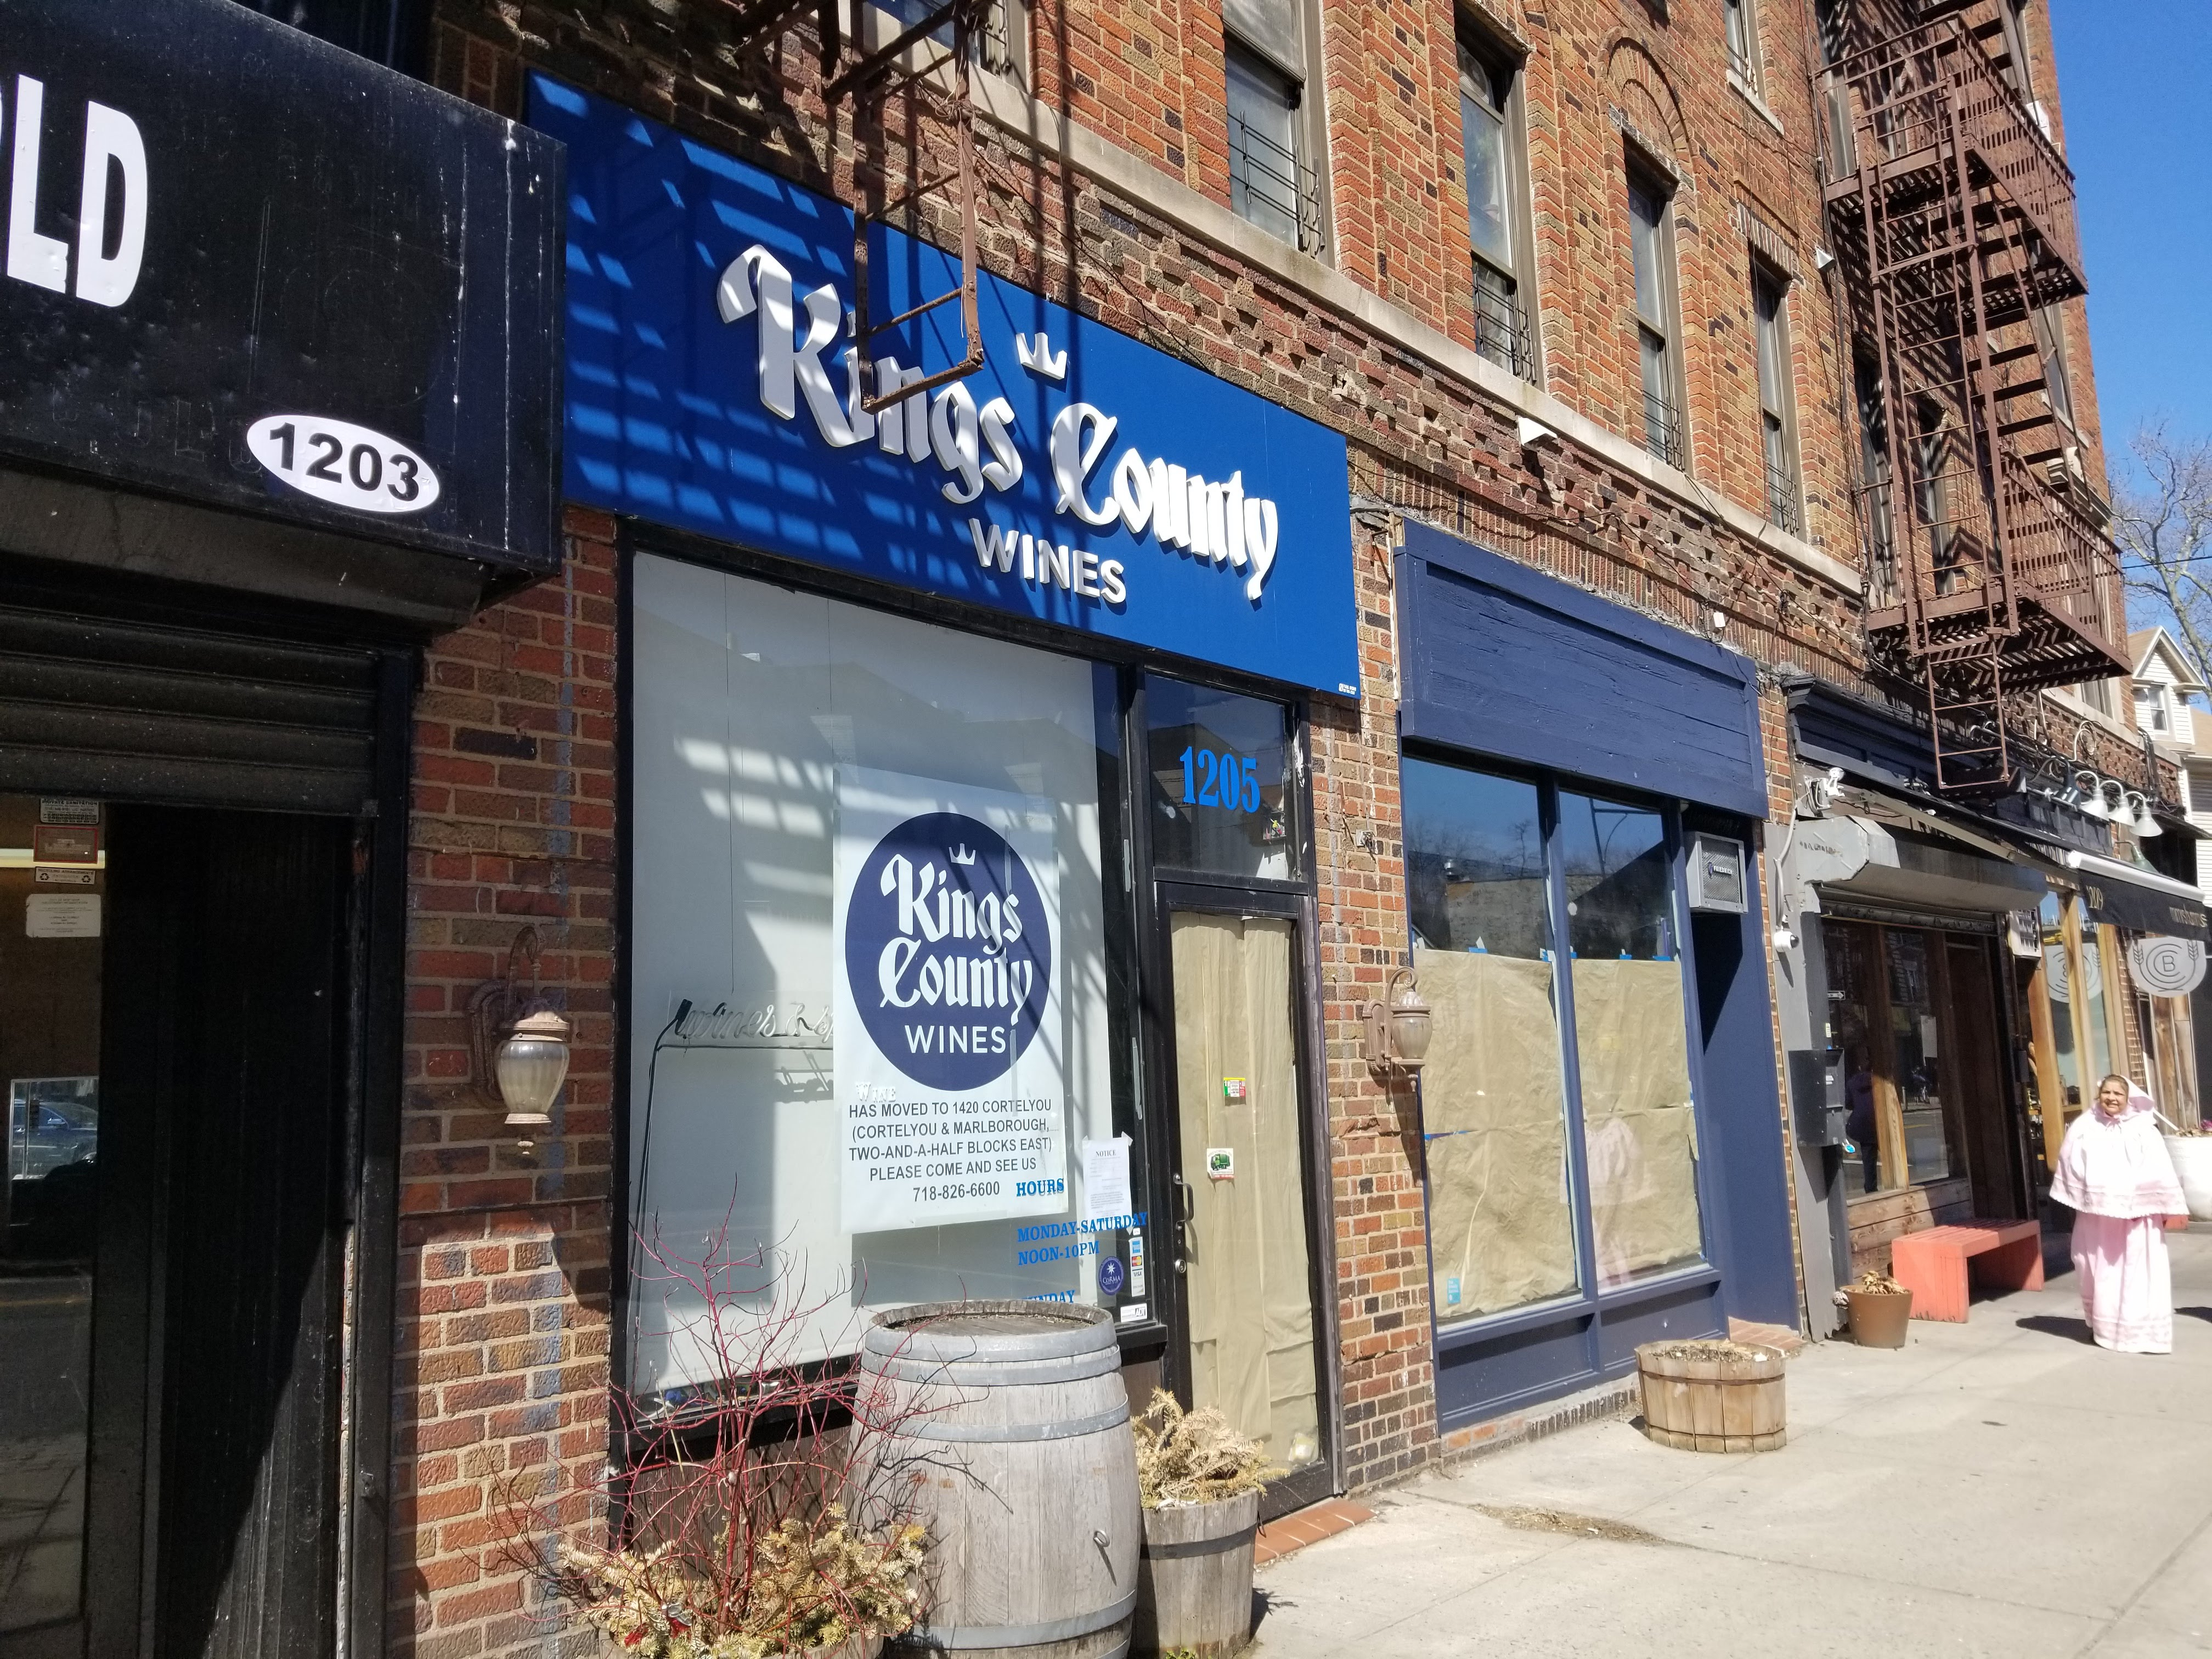 Kings County Wines formerly at 1205 Cortelyou Rd. (Liena Zagare/Bklyner)